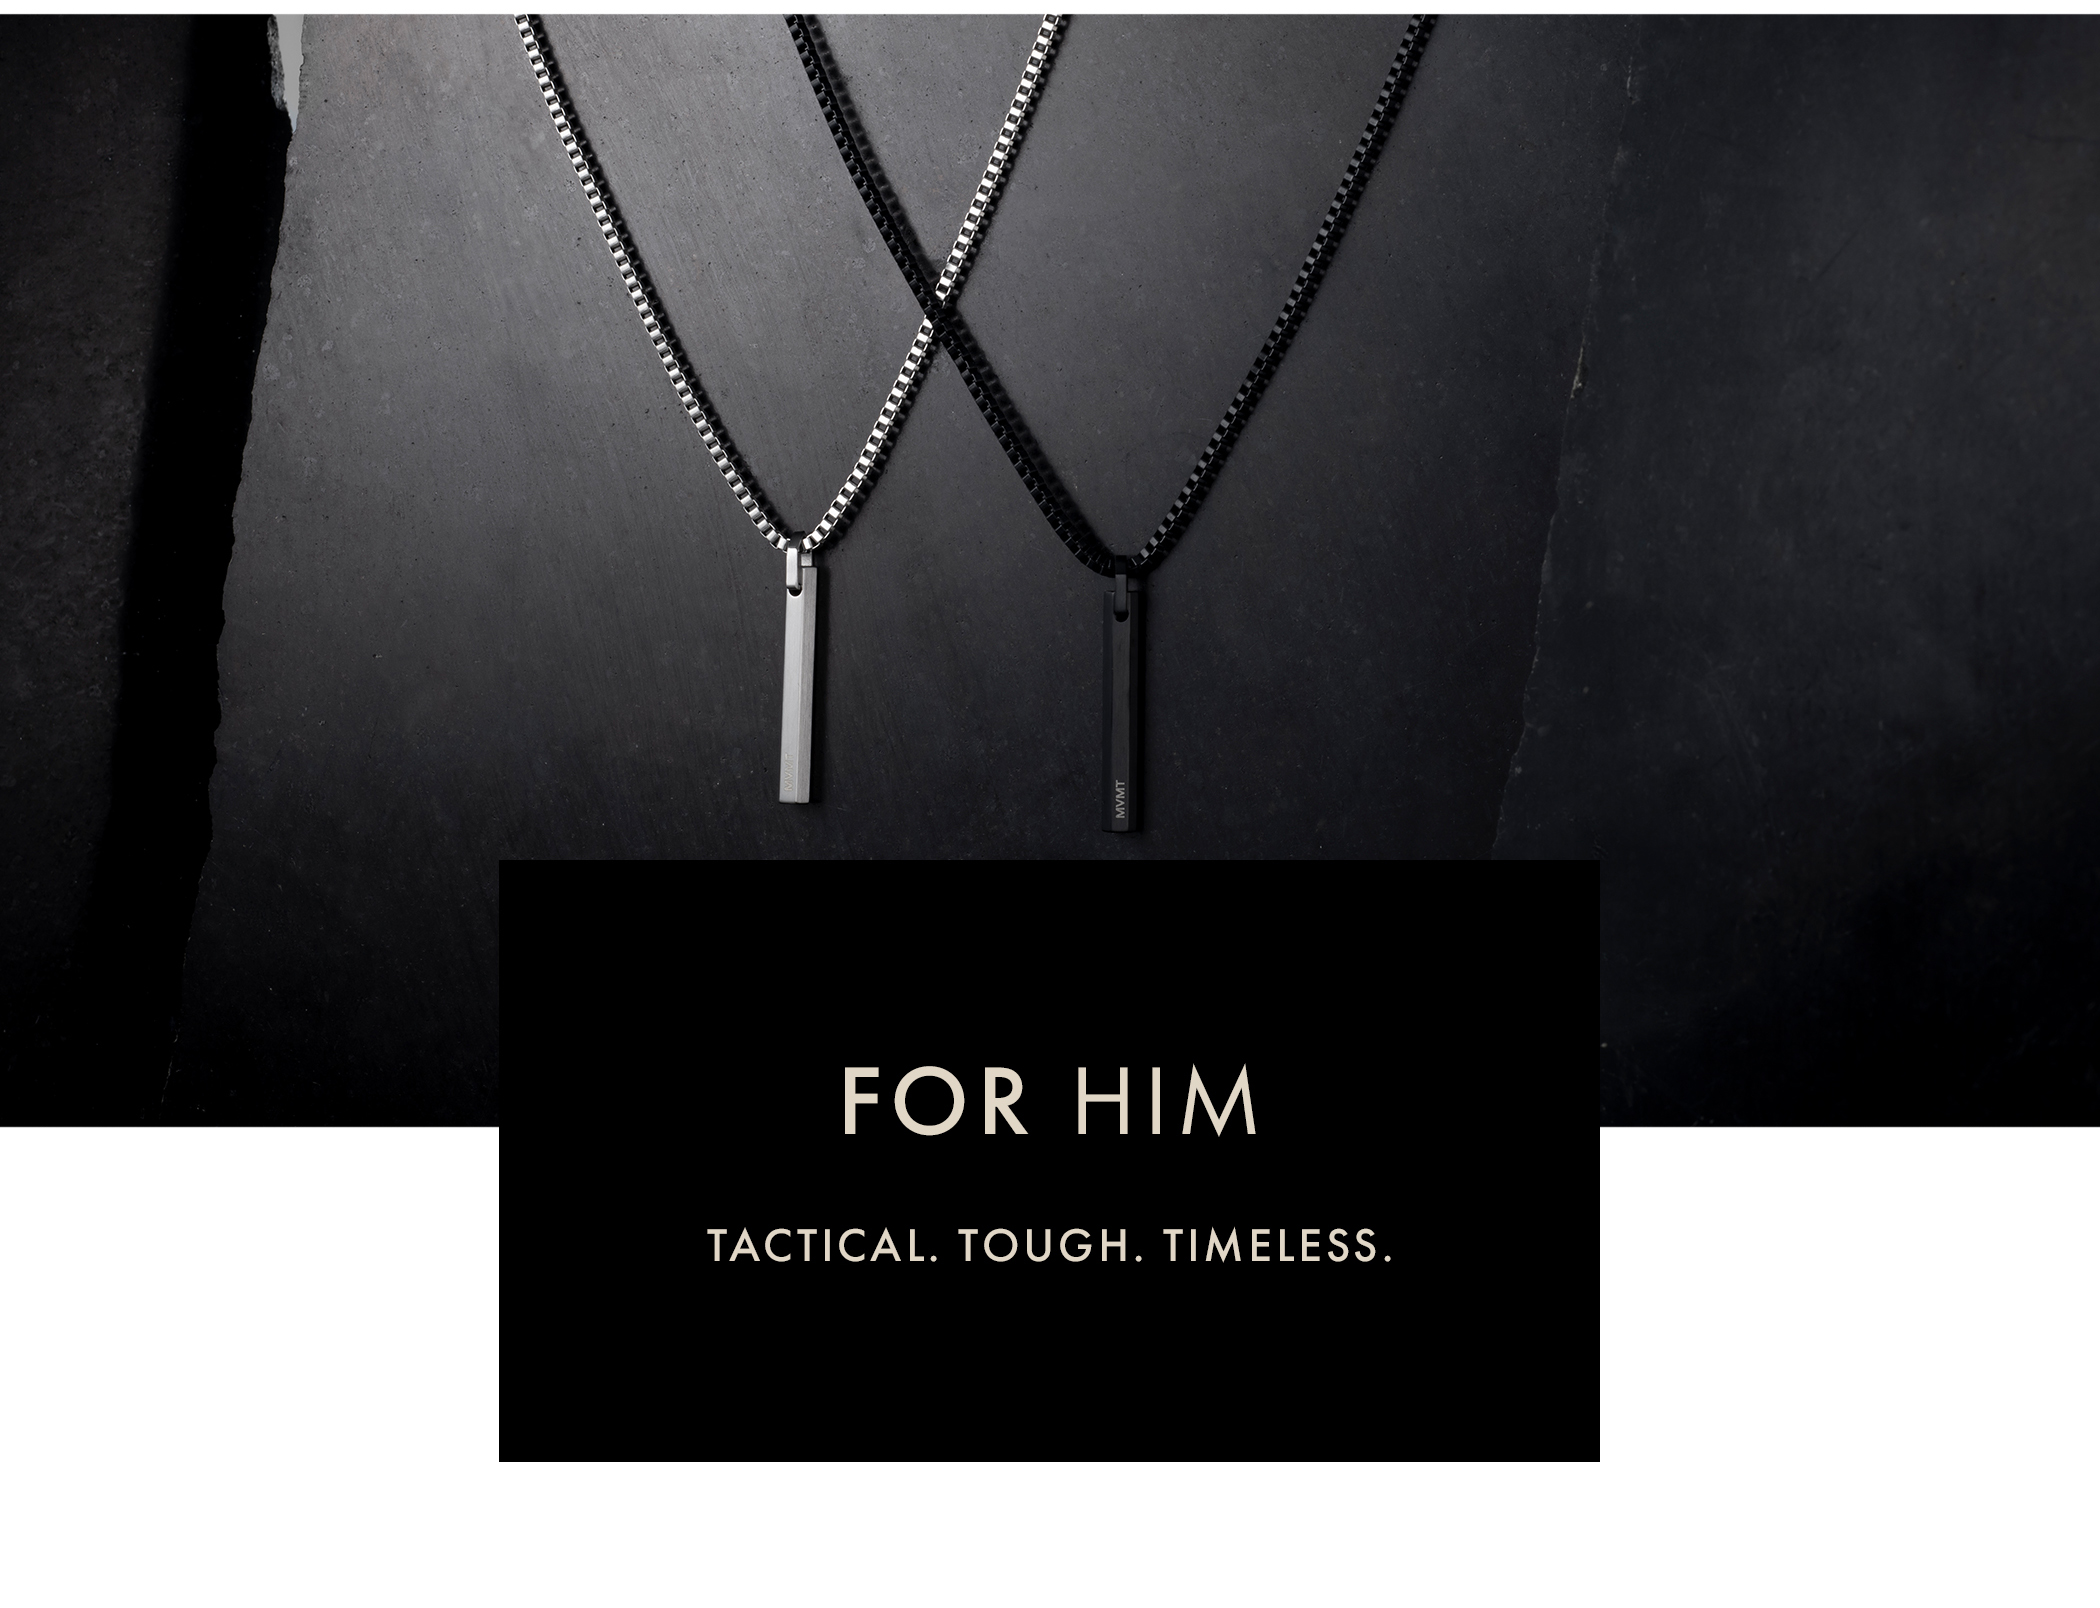 For Him. Tactical. Tough. Timeless.